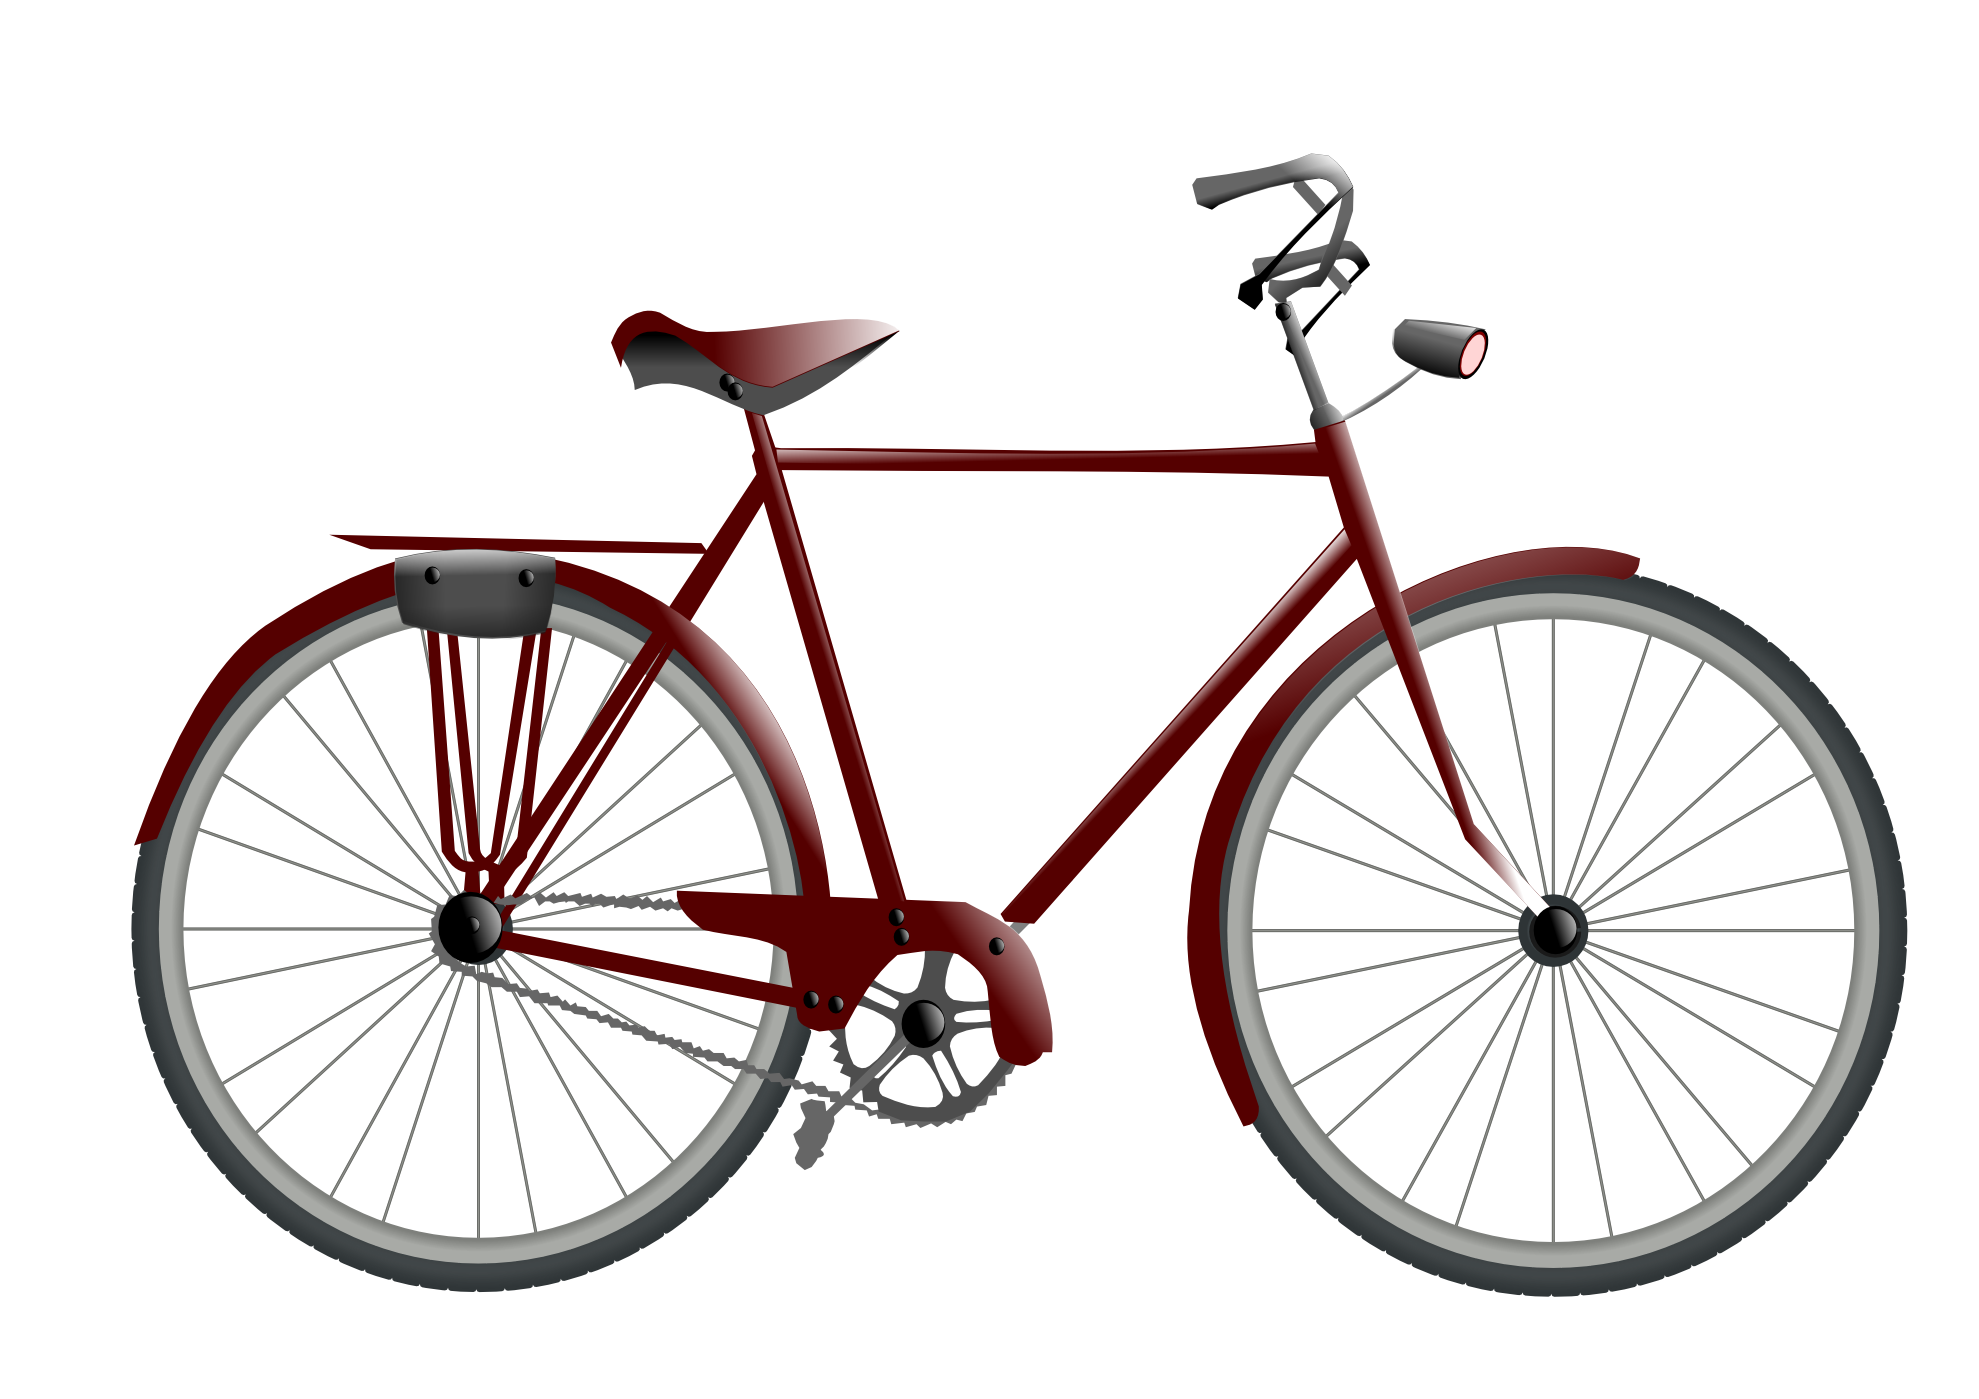 Portfolio drawing bicycle. Image result for with